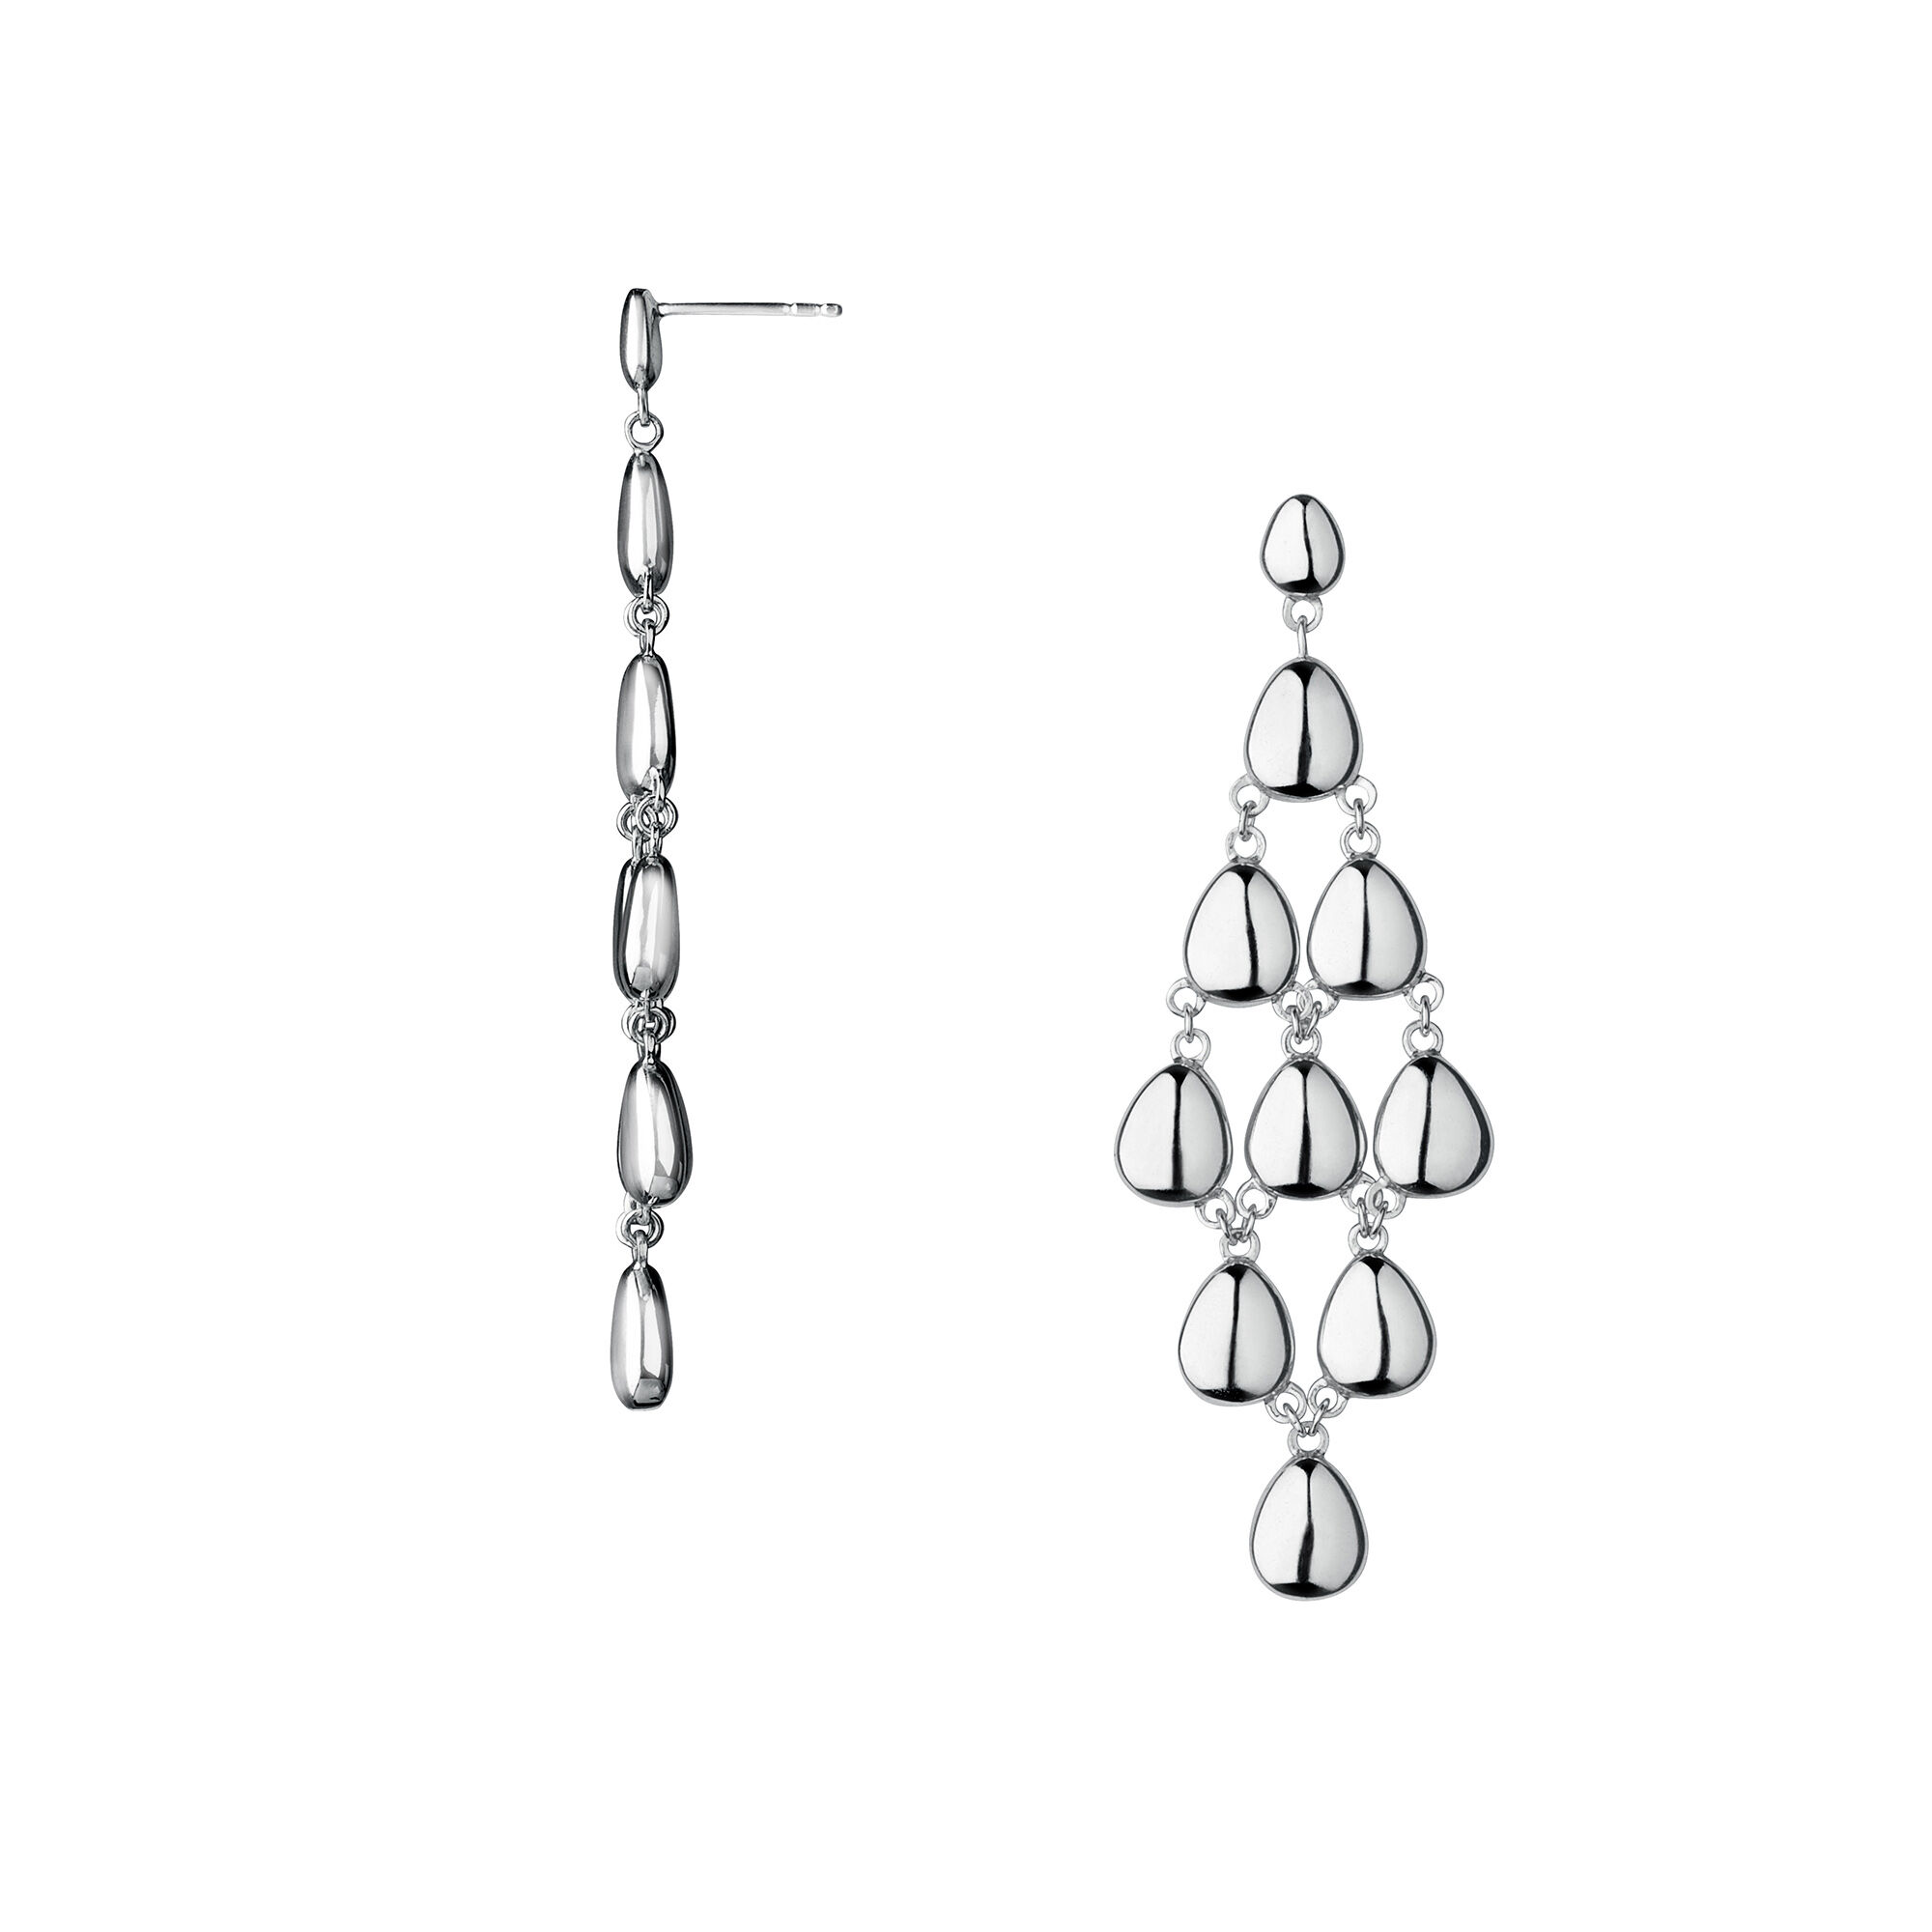 earrings jewelry marrakech fine jewellery product amy nordstrom chandelier